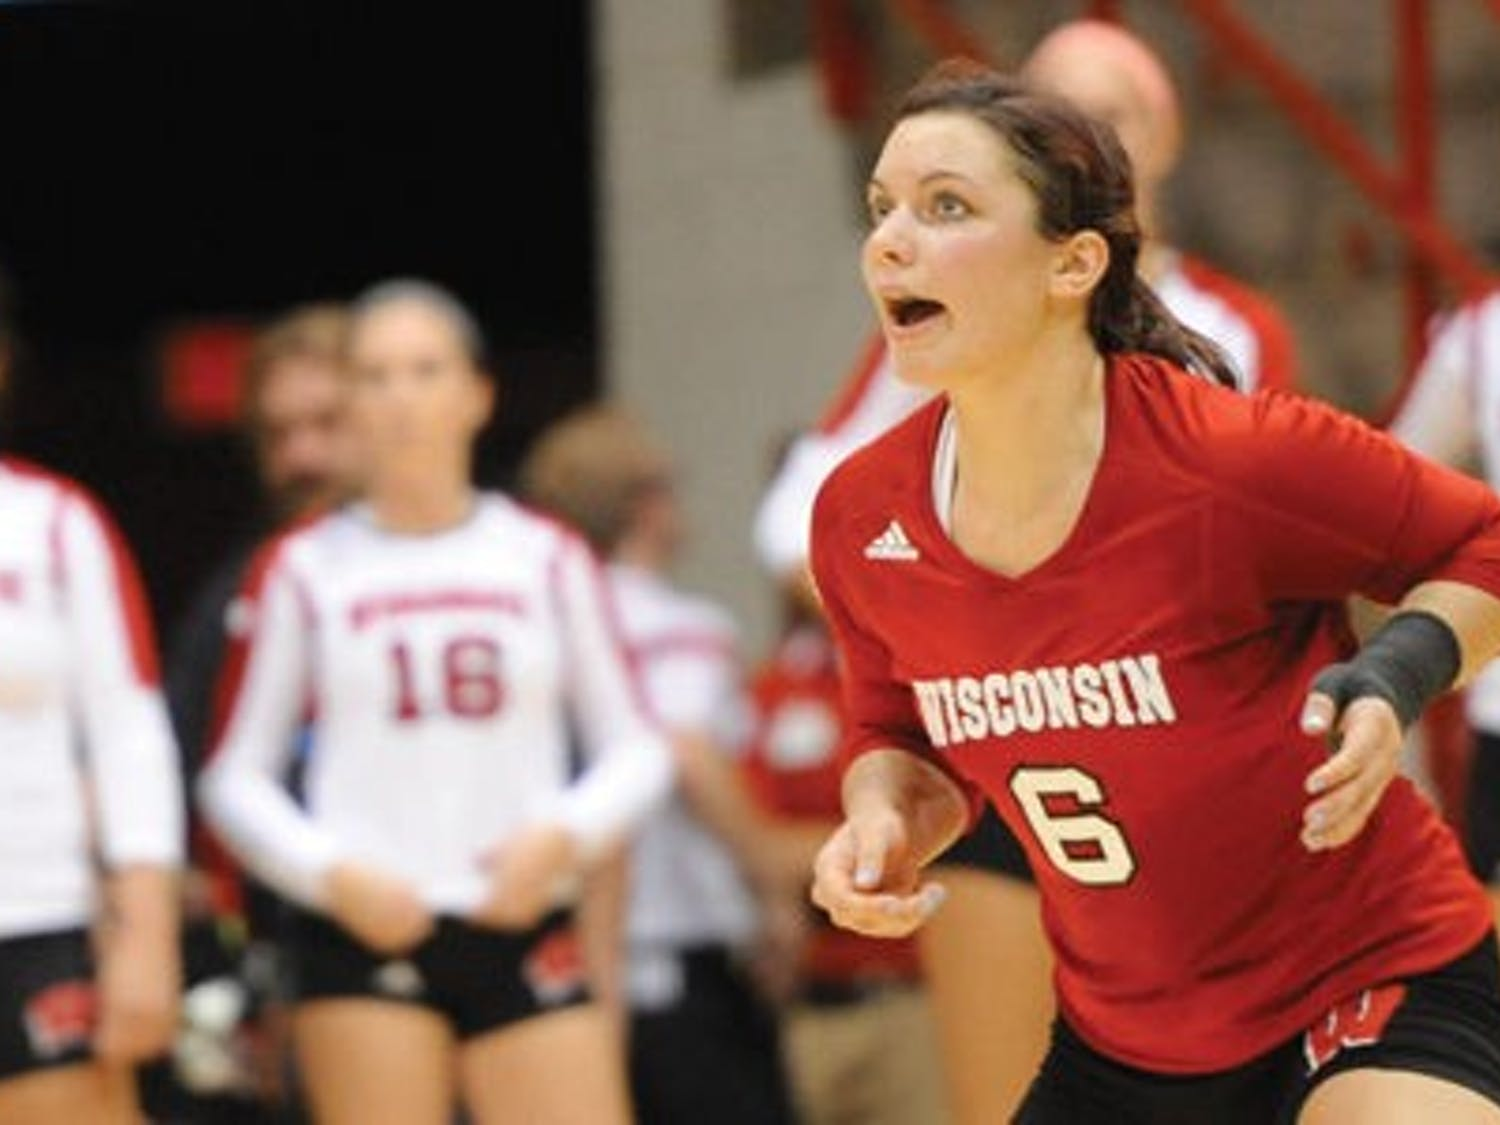 Junior libero Taylor Morey leads the Big Ten in digs per set with 5.36 and has been a big part of Wisconsin's 15-2 start to 2014.